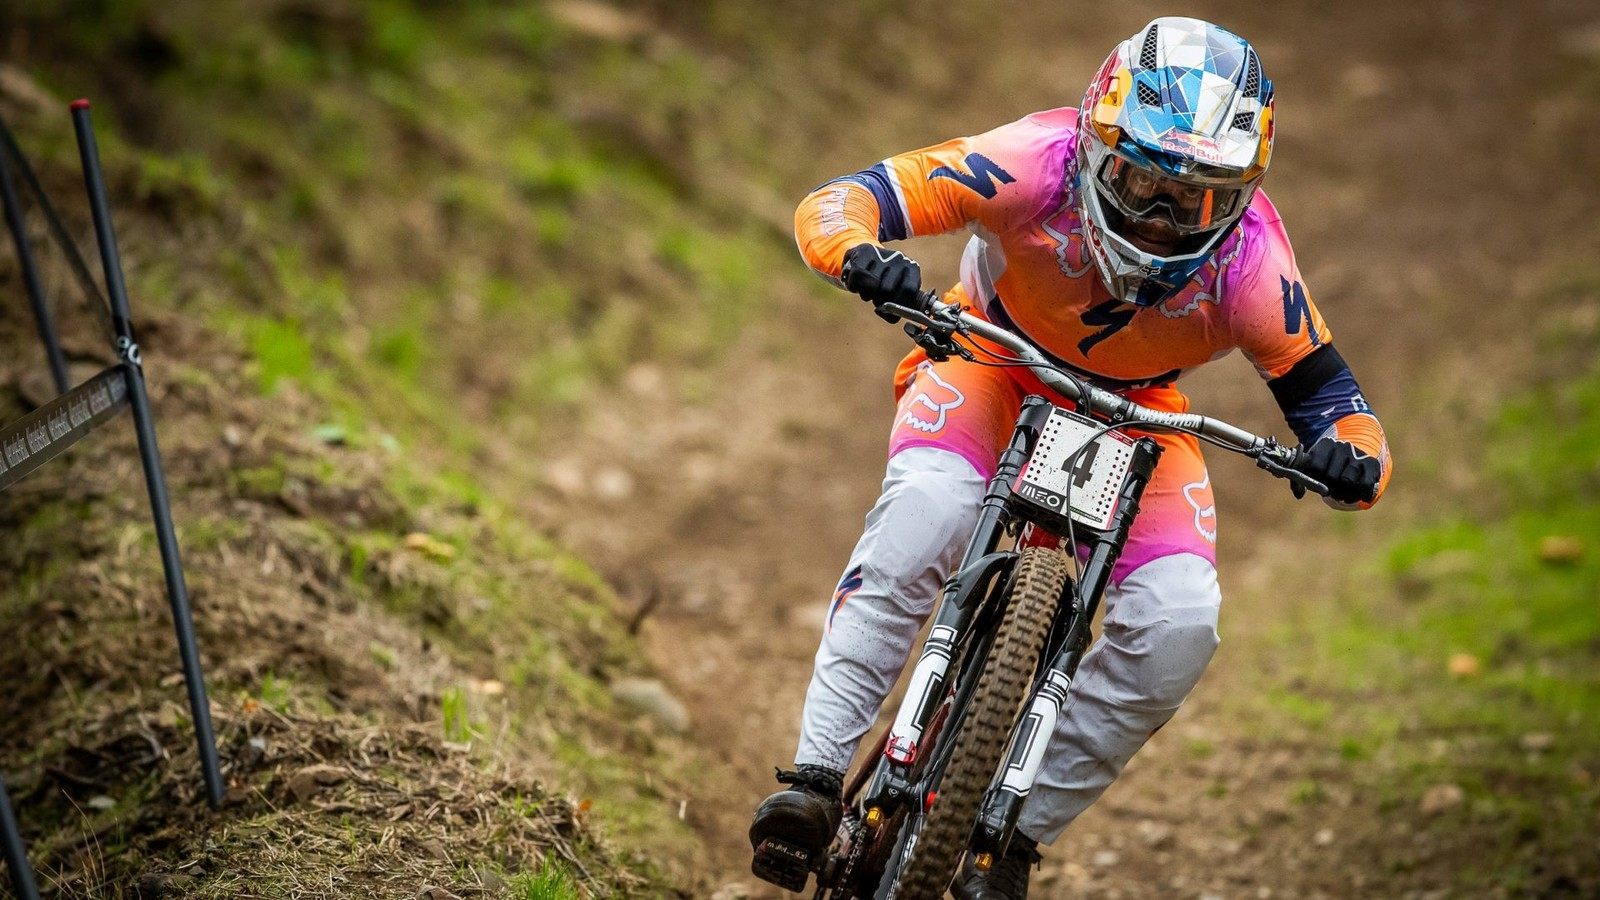 ÖHLINS Renews Partnership with Specialized Gravity, and Steps Up its Commitment to Downhill Racing